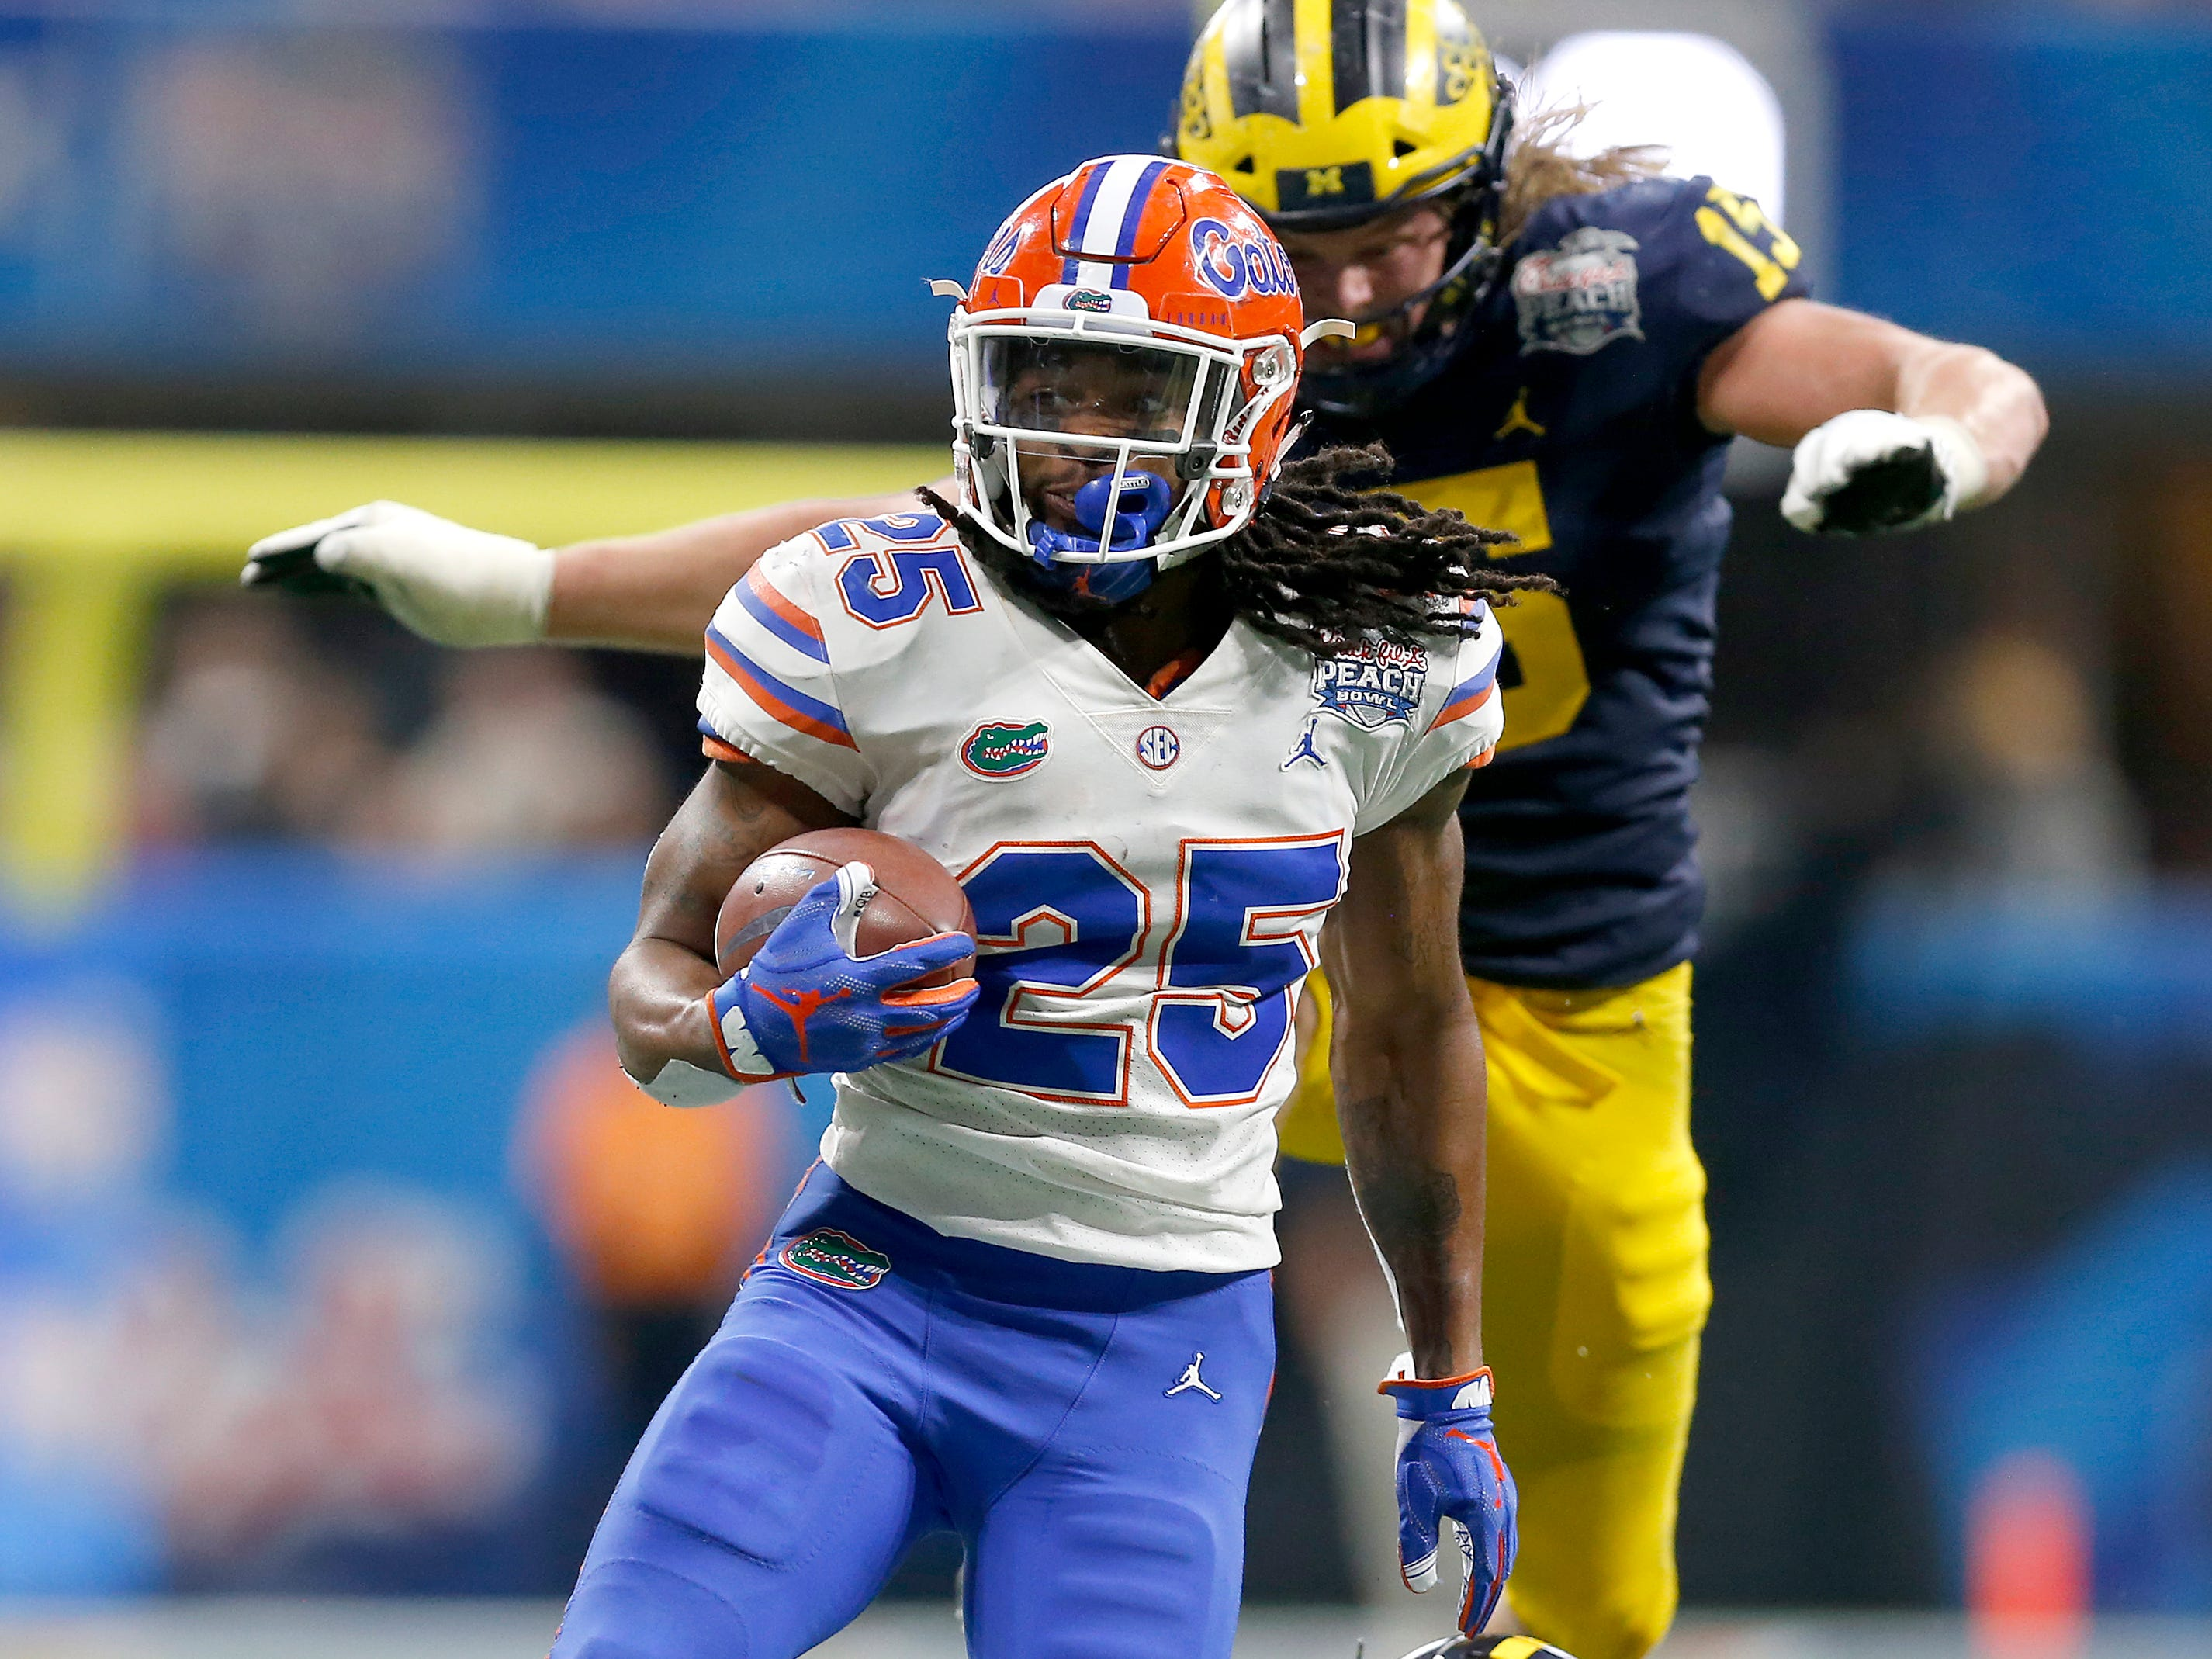 Florida running back Jordan Scarlett scores a third-quarter rushing touchdown during U-M's 41-15 loss in the Peach Bowl on Saturday, Dec. 29, 2018, in Atlanta.